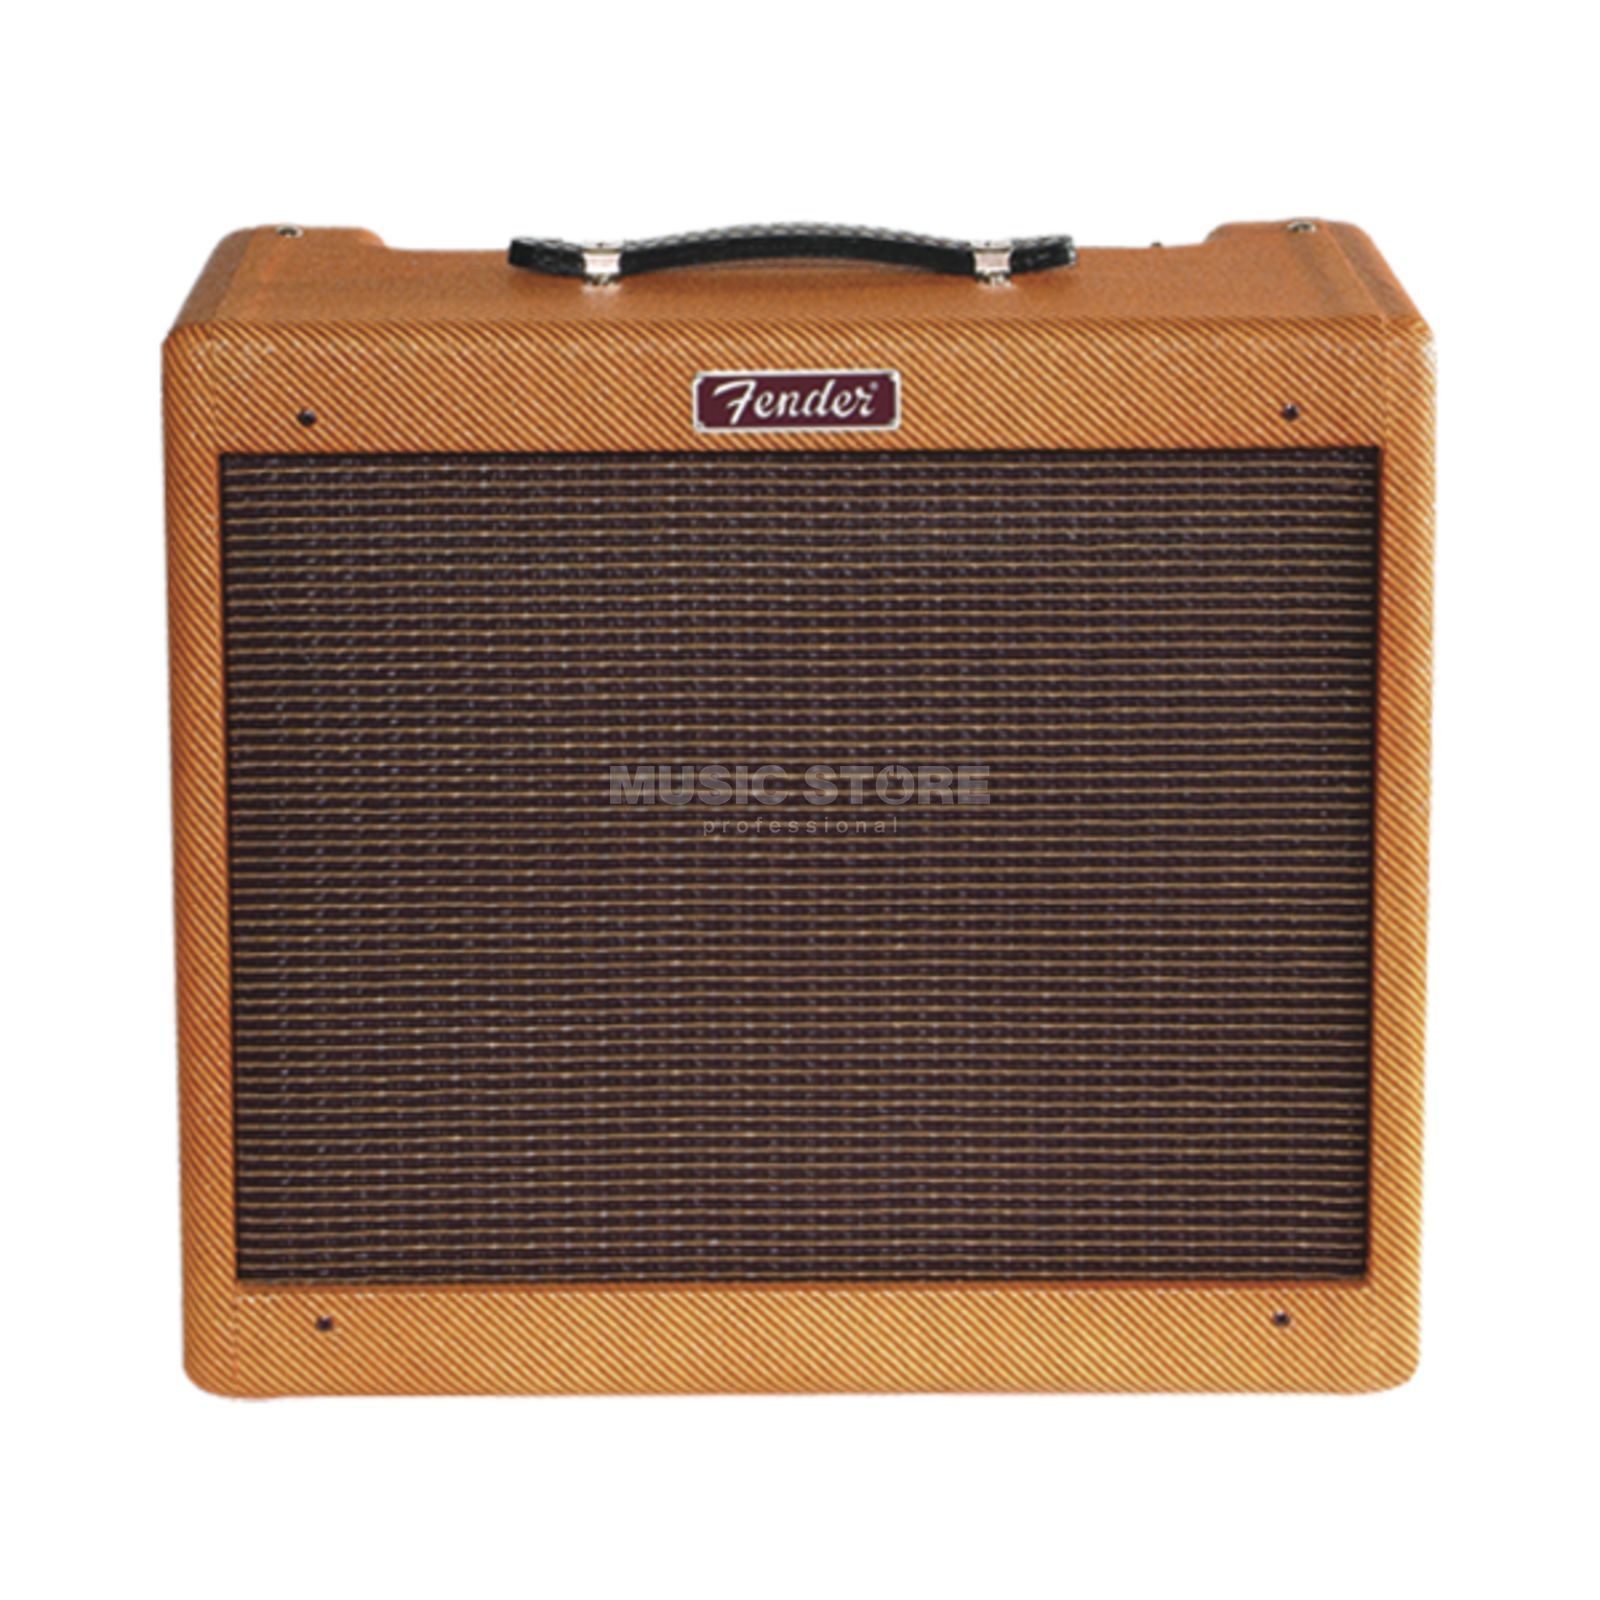 Fender Blues Junior LTD Lacquered Tweed Image du produit